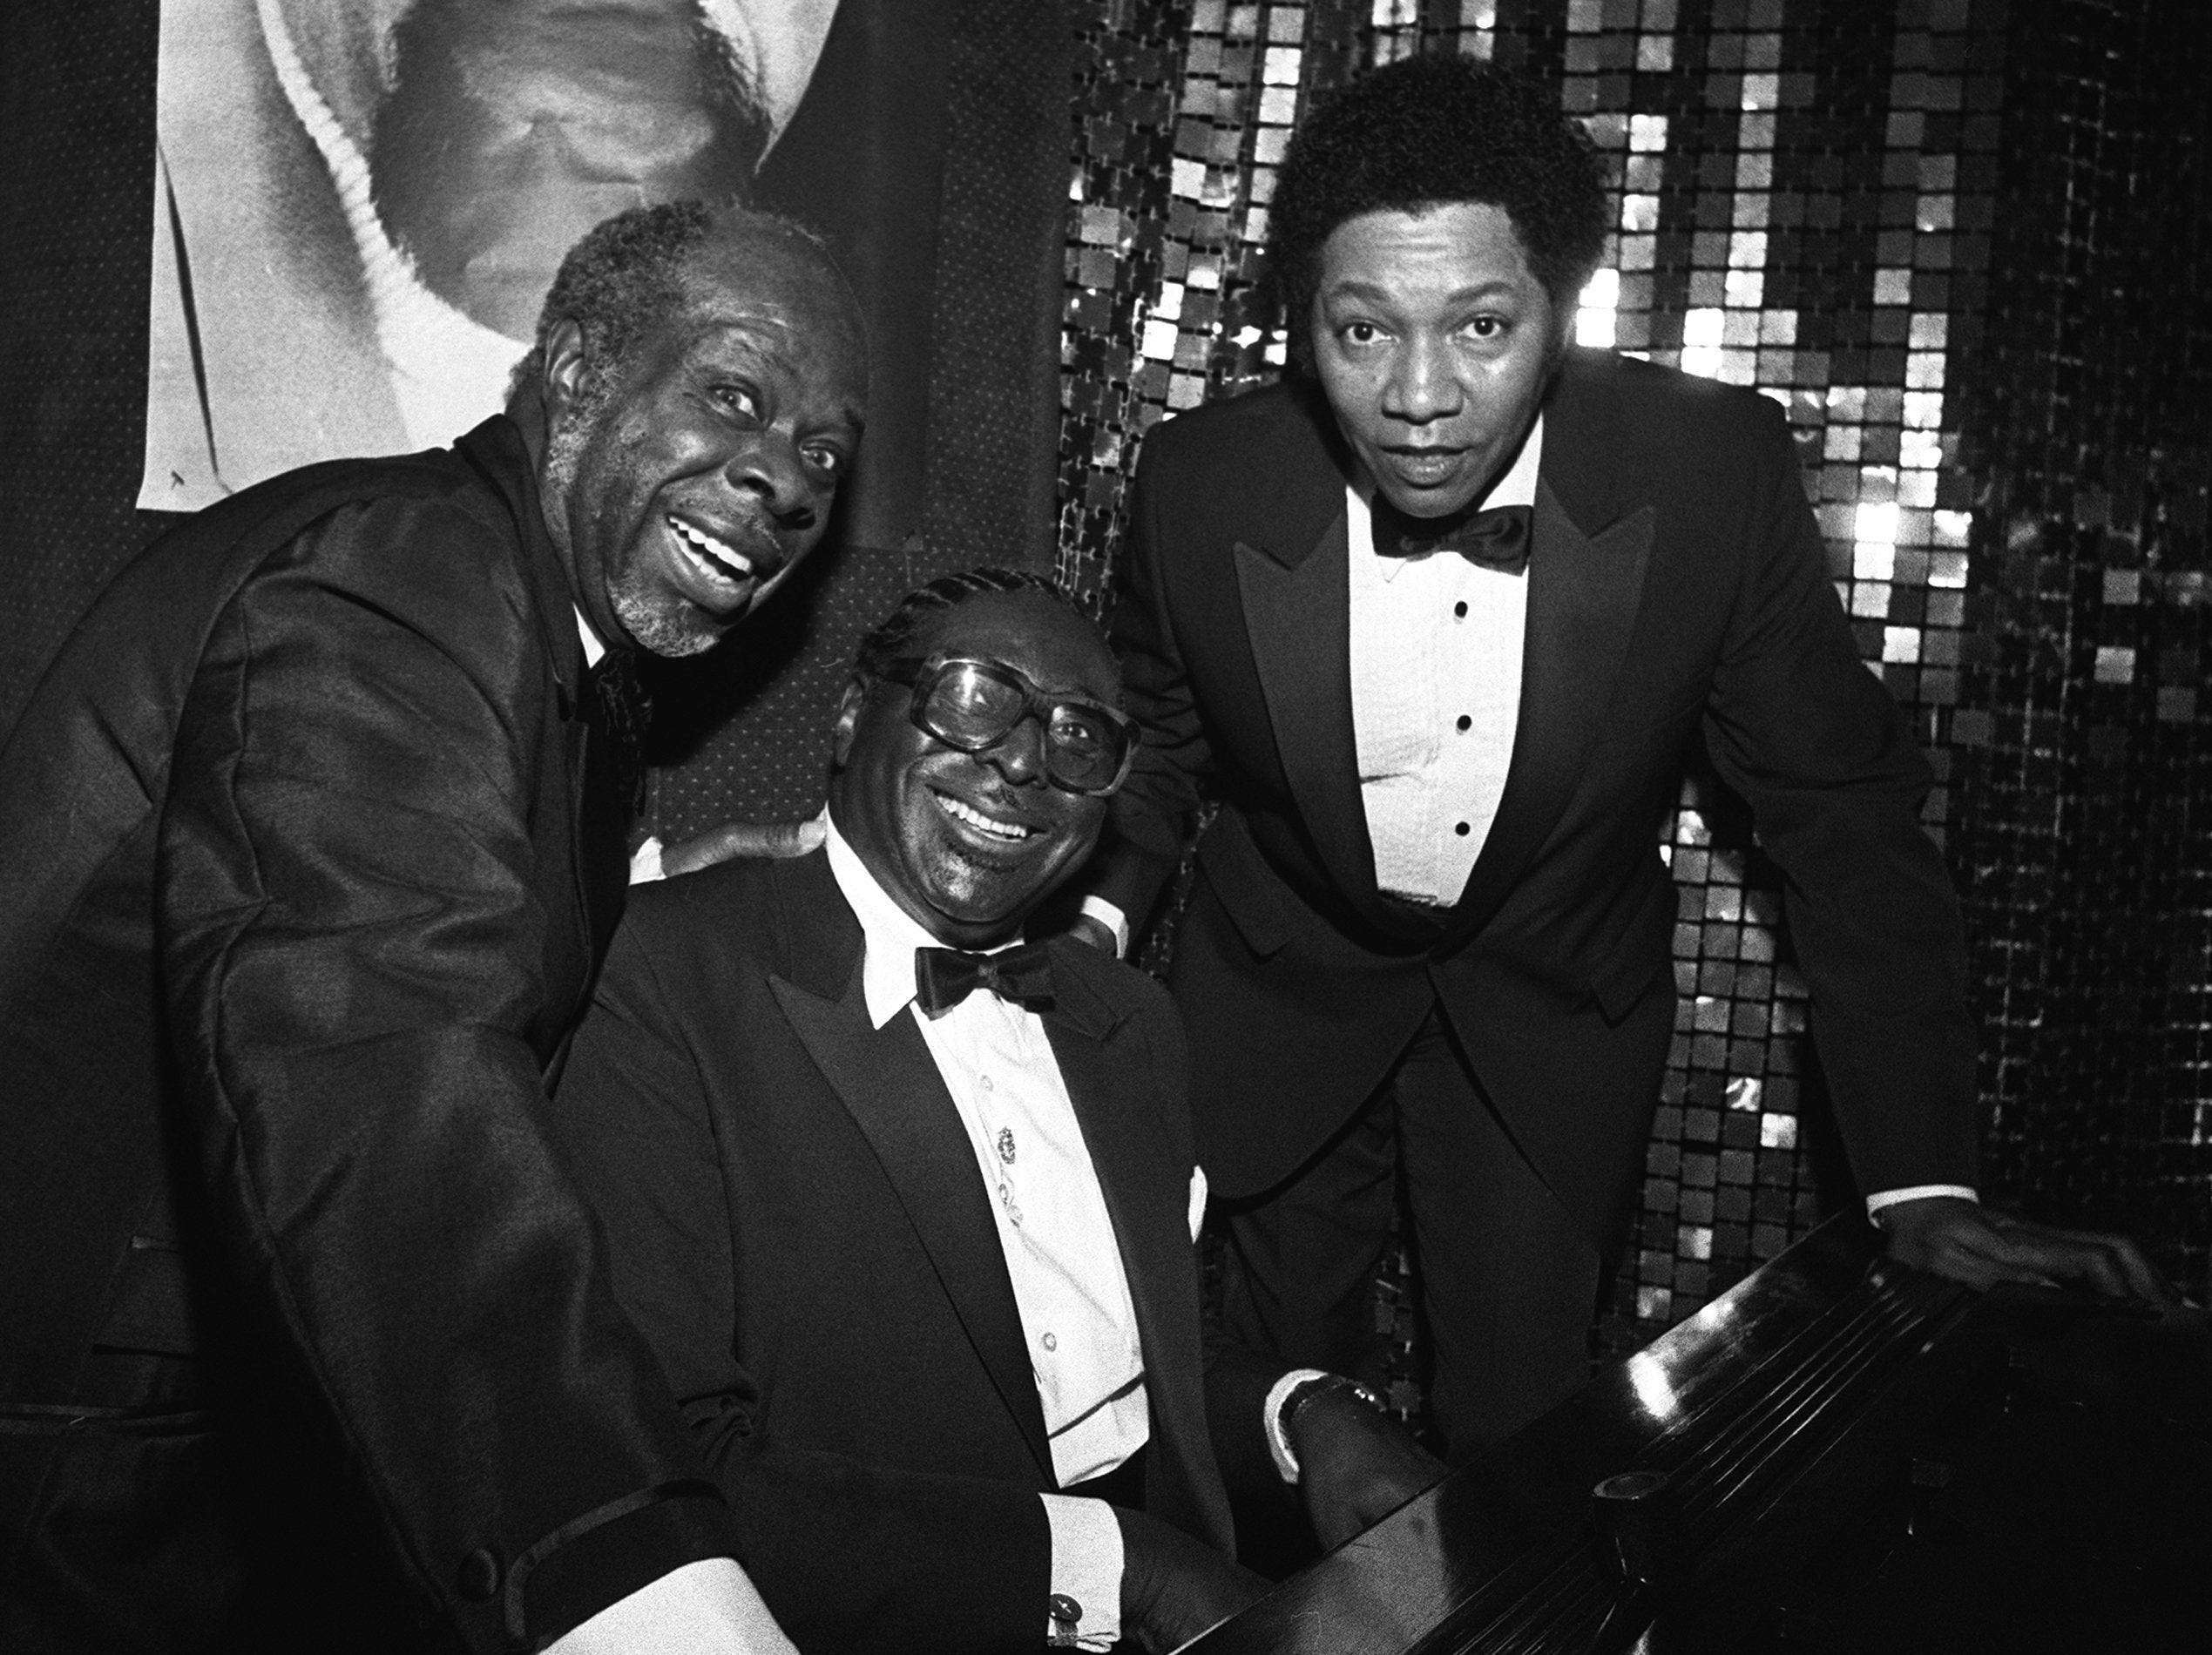 Rufus Thomas, Albert King and Luther Ingram (From Left) shared a musical moment at The Peabody's Skyway in April 1984 where artists from the Stax recording company got together for a reunion dinner. The black tie dinner was a prelude to a reunion concert at the Mid-South Coliseum, with more than 15 former Stax artists invited to perform.